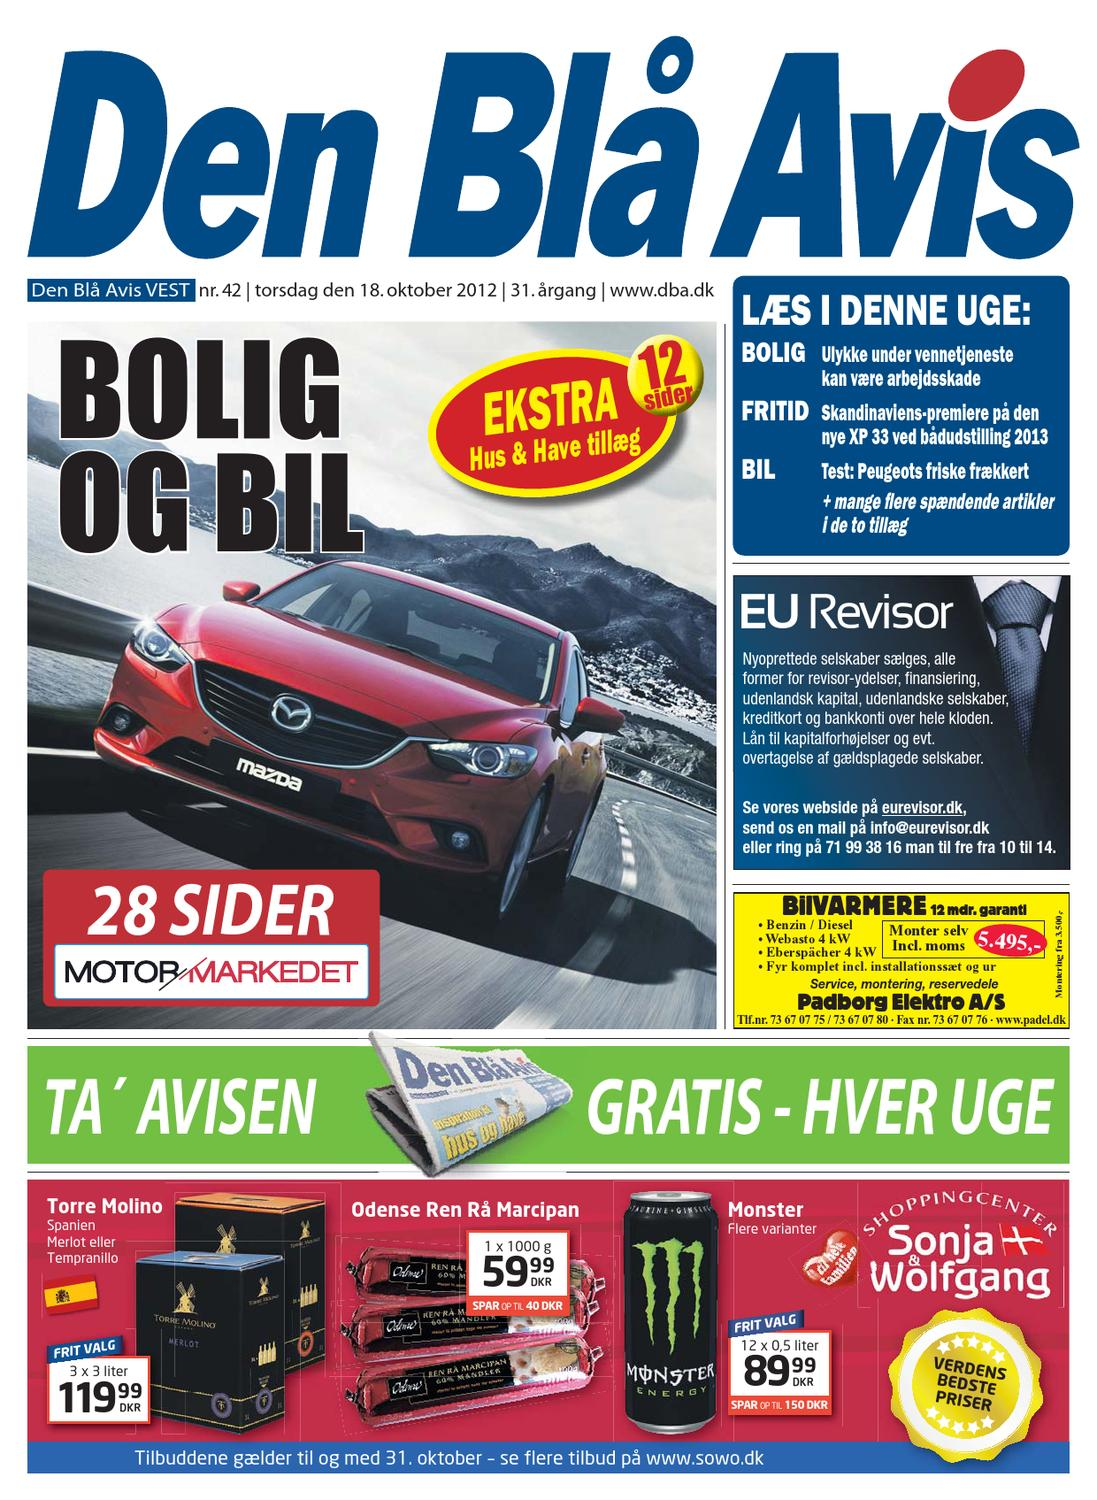 95b999a2 Den Blå Avis - VEST - 42-2012 by Grafik DBA - issuu